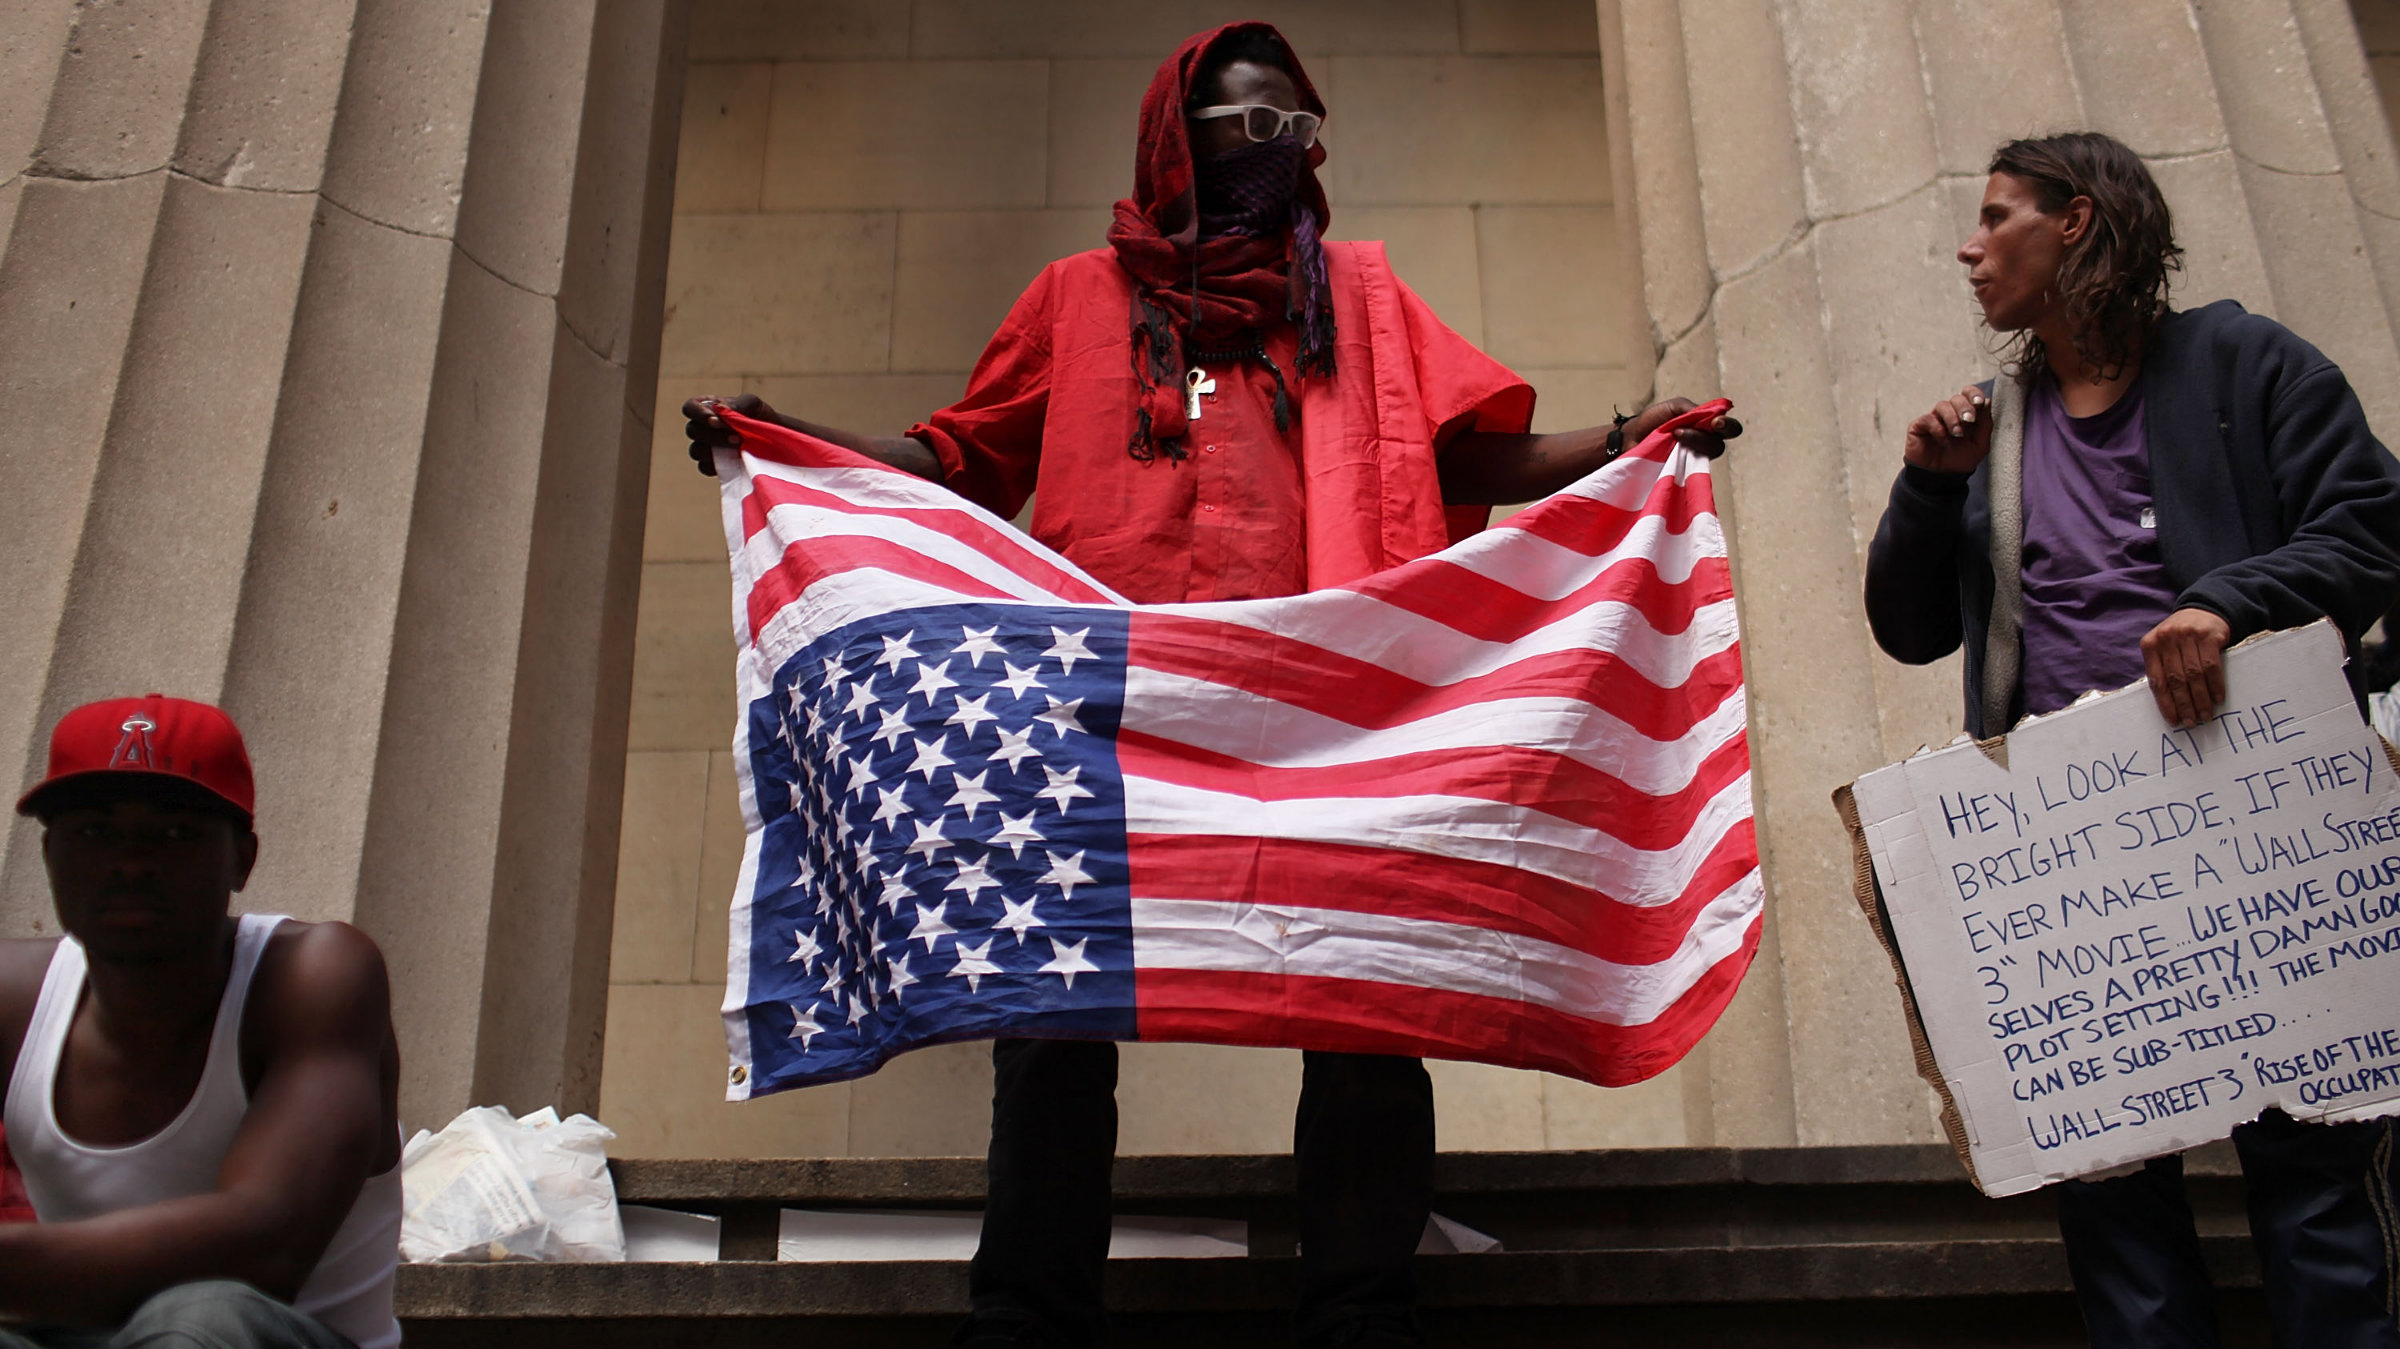 Occupy Wall Street was the pinnacle of outrage over American income inequality.